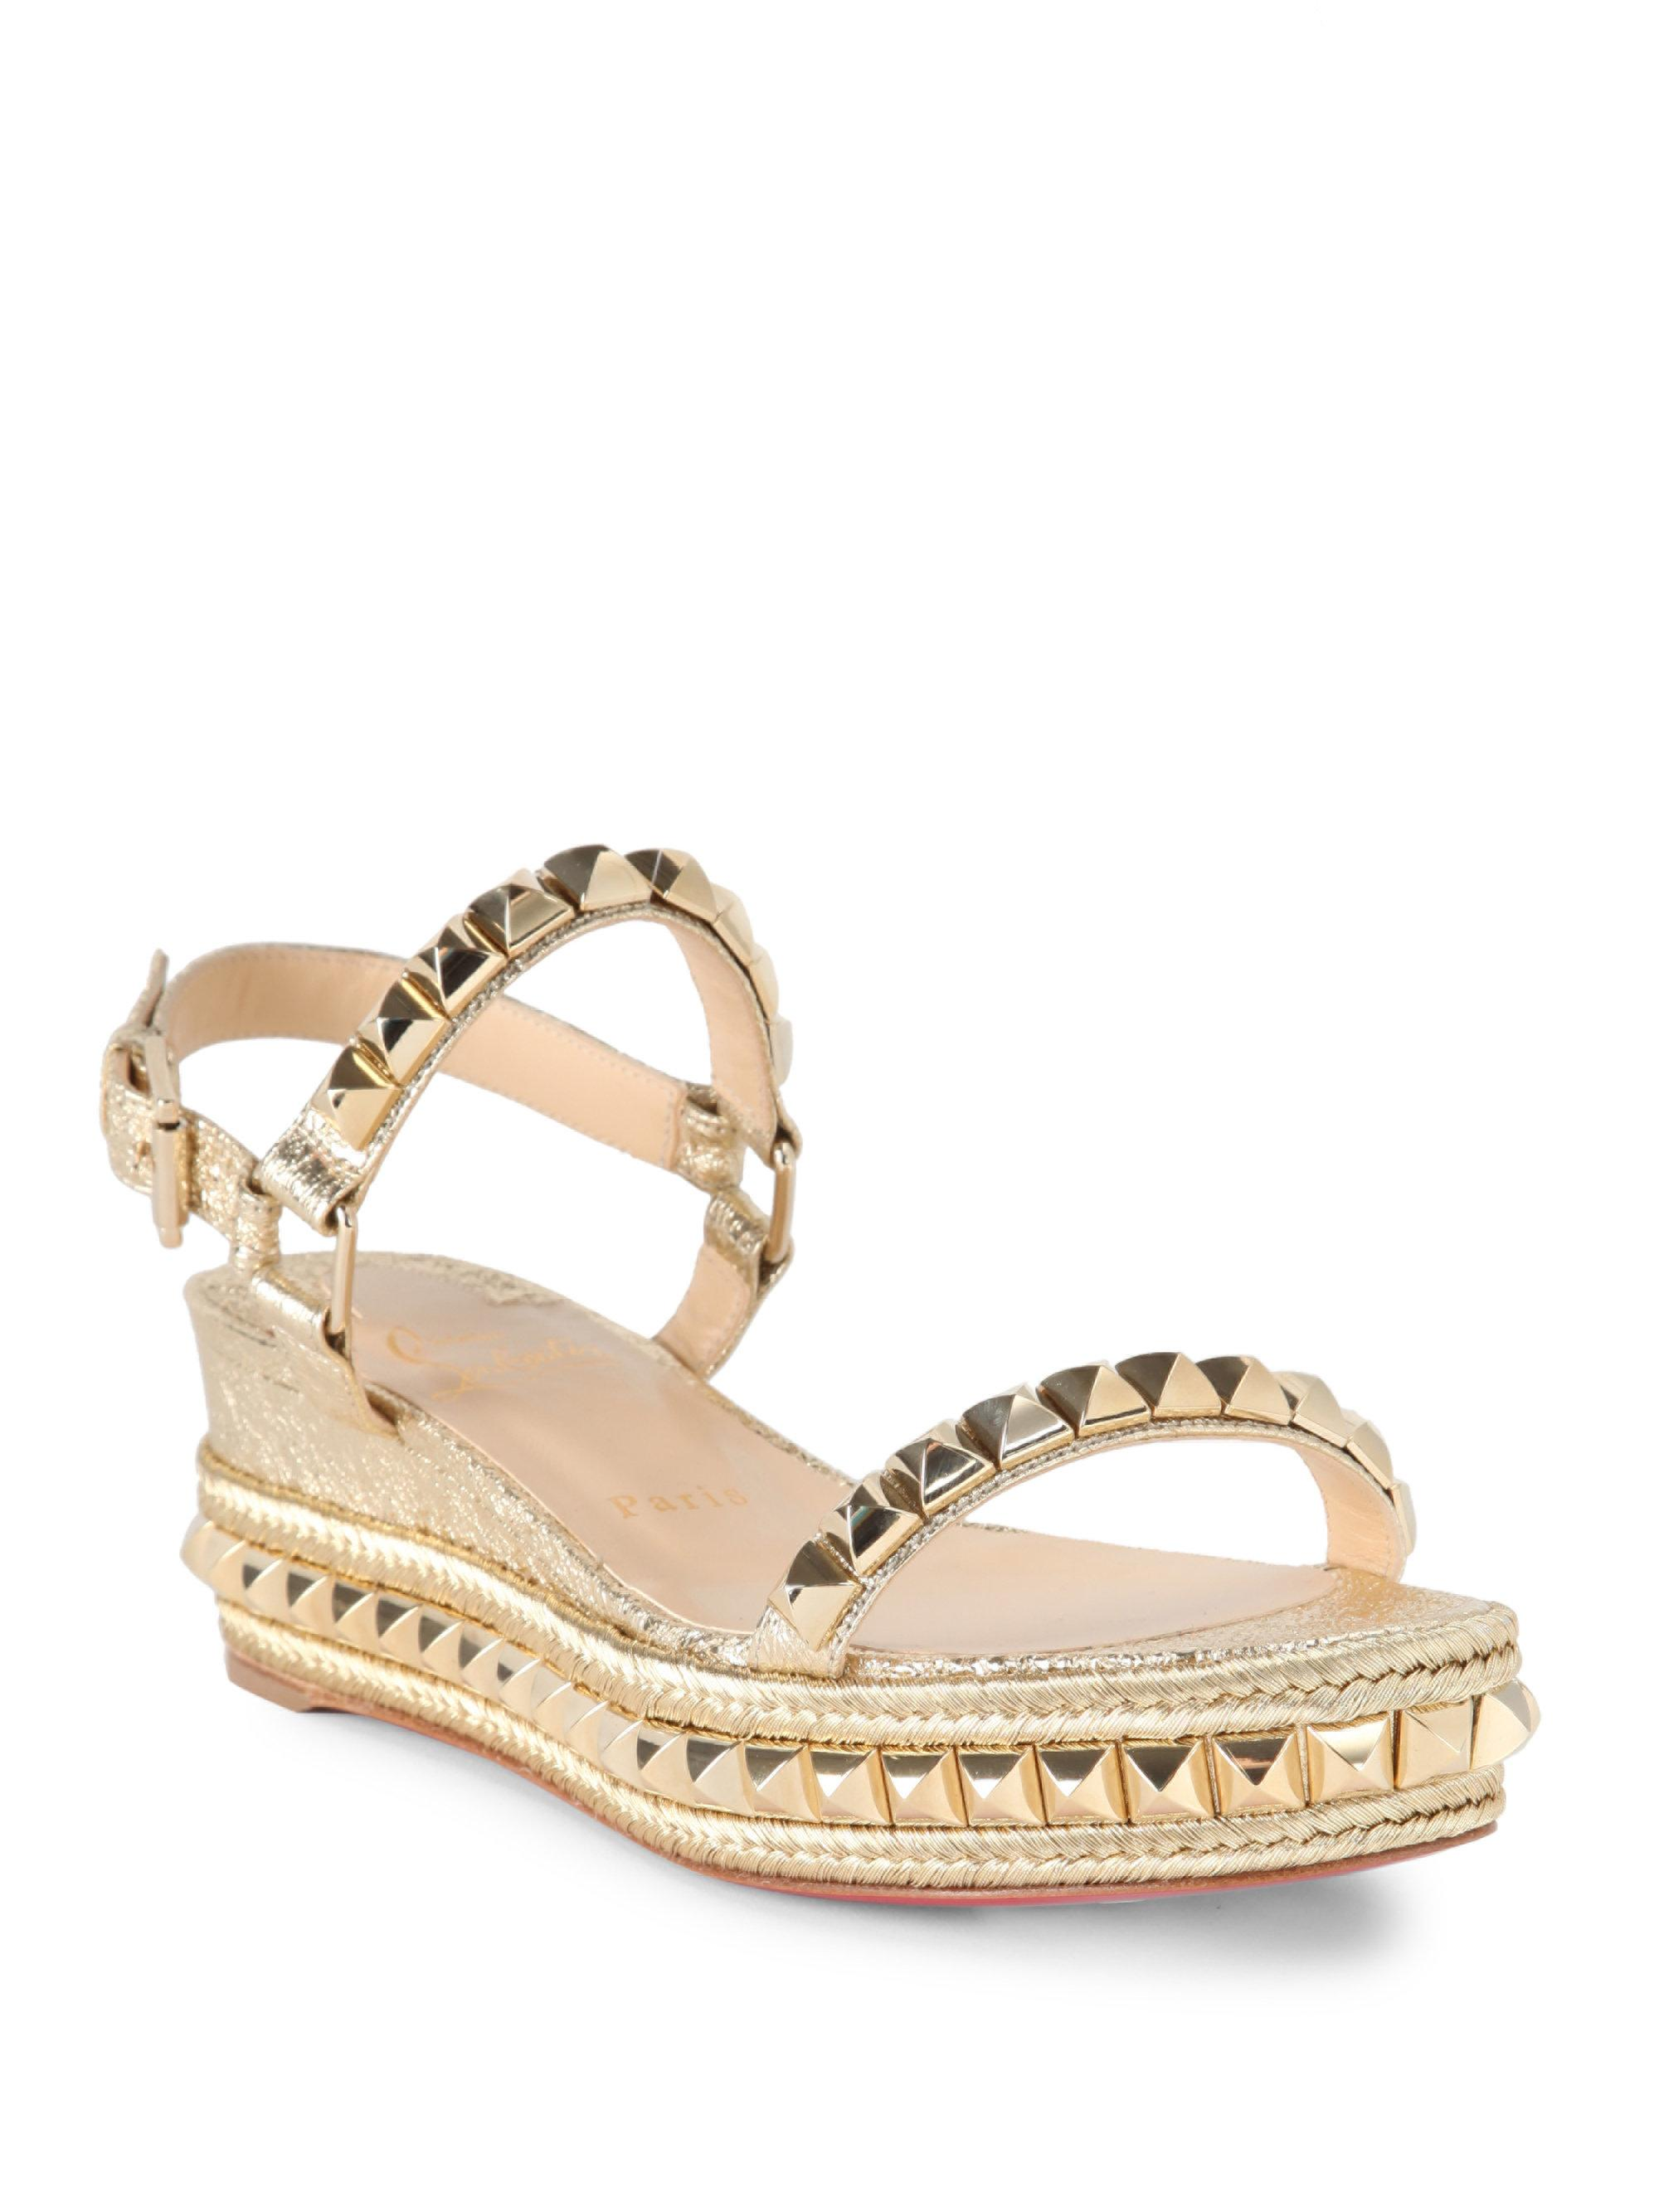 f05499382c6 Christian Louboutin Cataclou 60 Studded Metallic Leather Espadrille Wedge  Sandals